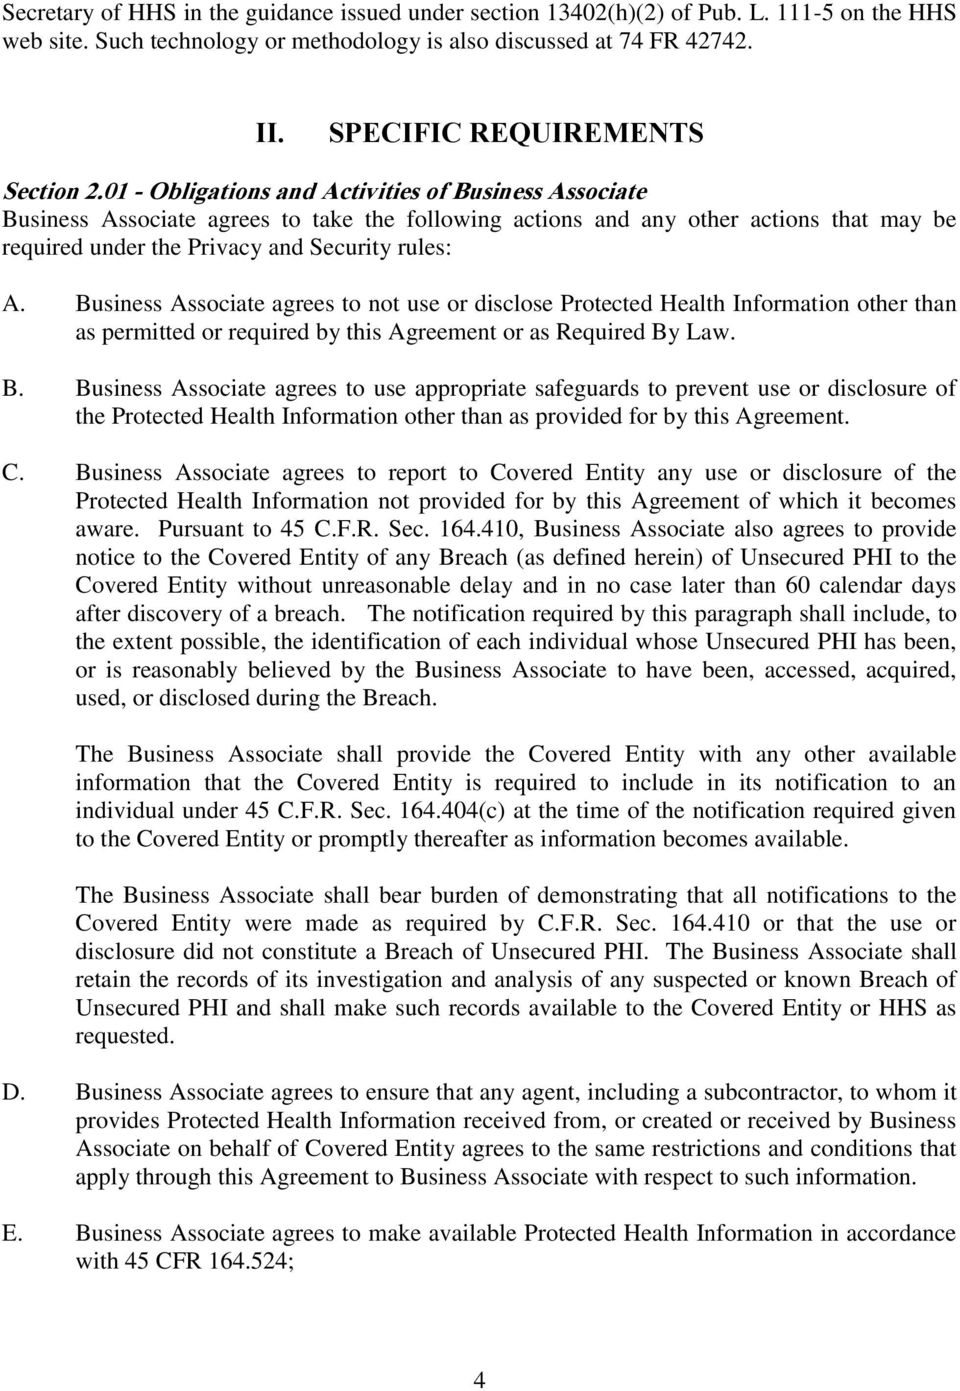 01 - Obligations and Activities of Business Associate Business Associate agrees to take the following actions and any other actions that may be required under the Privacy and Security rules: A.